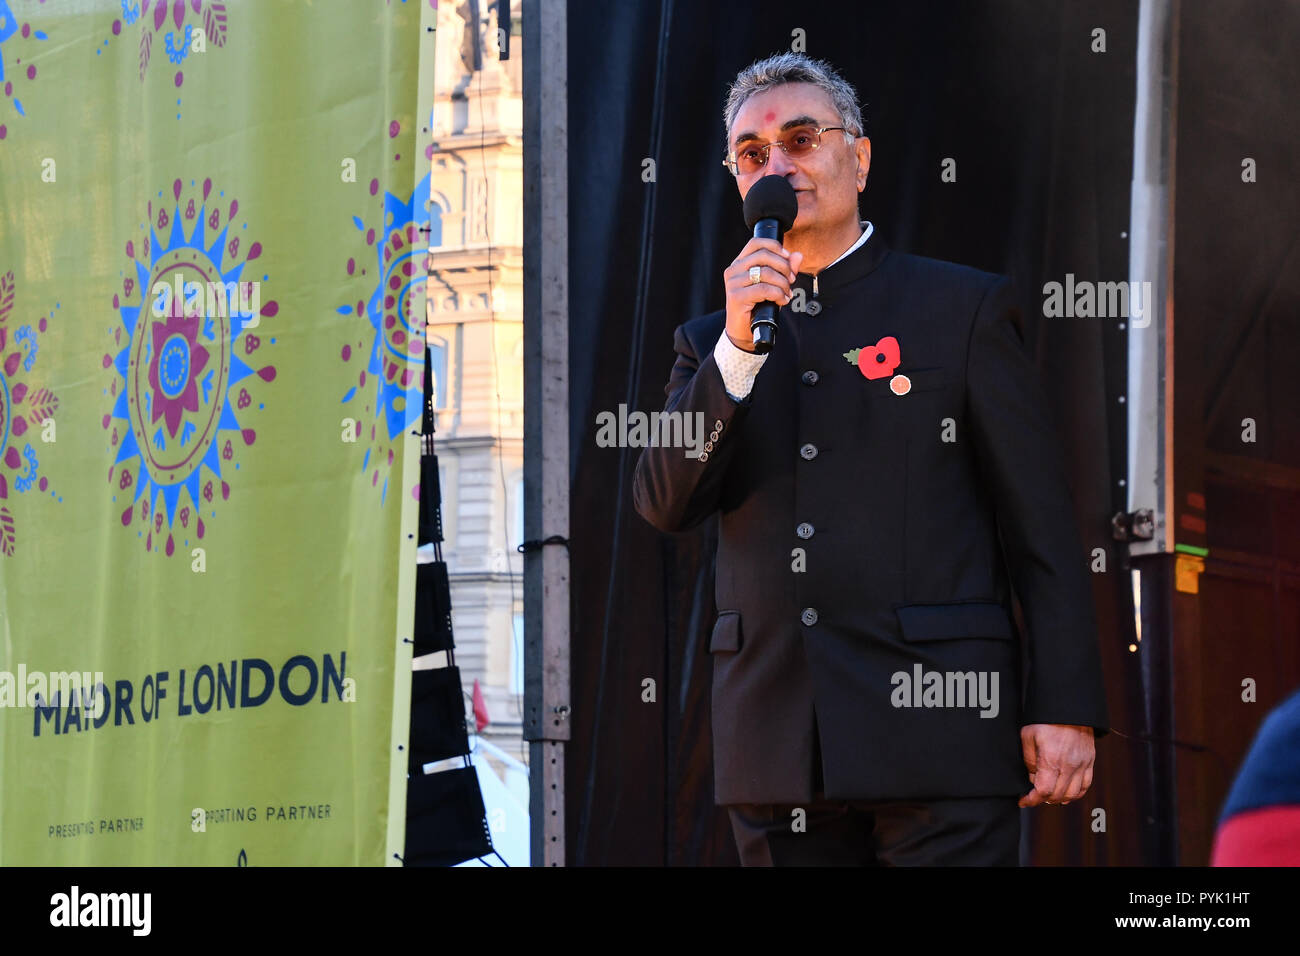 London, UK. 28th Oct, 2018. Thousands attend the Mayor of London celebrates the Festival of Lights with Diwali in Trafalgar Square on 28 October 2018, London, UK. Credit: Picture Capital/Alamy Live News - Stock Image